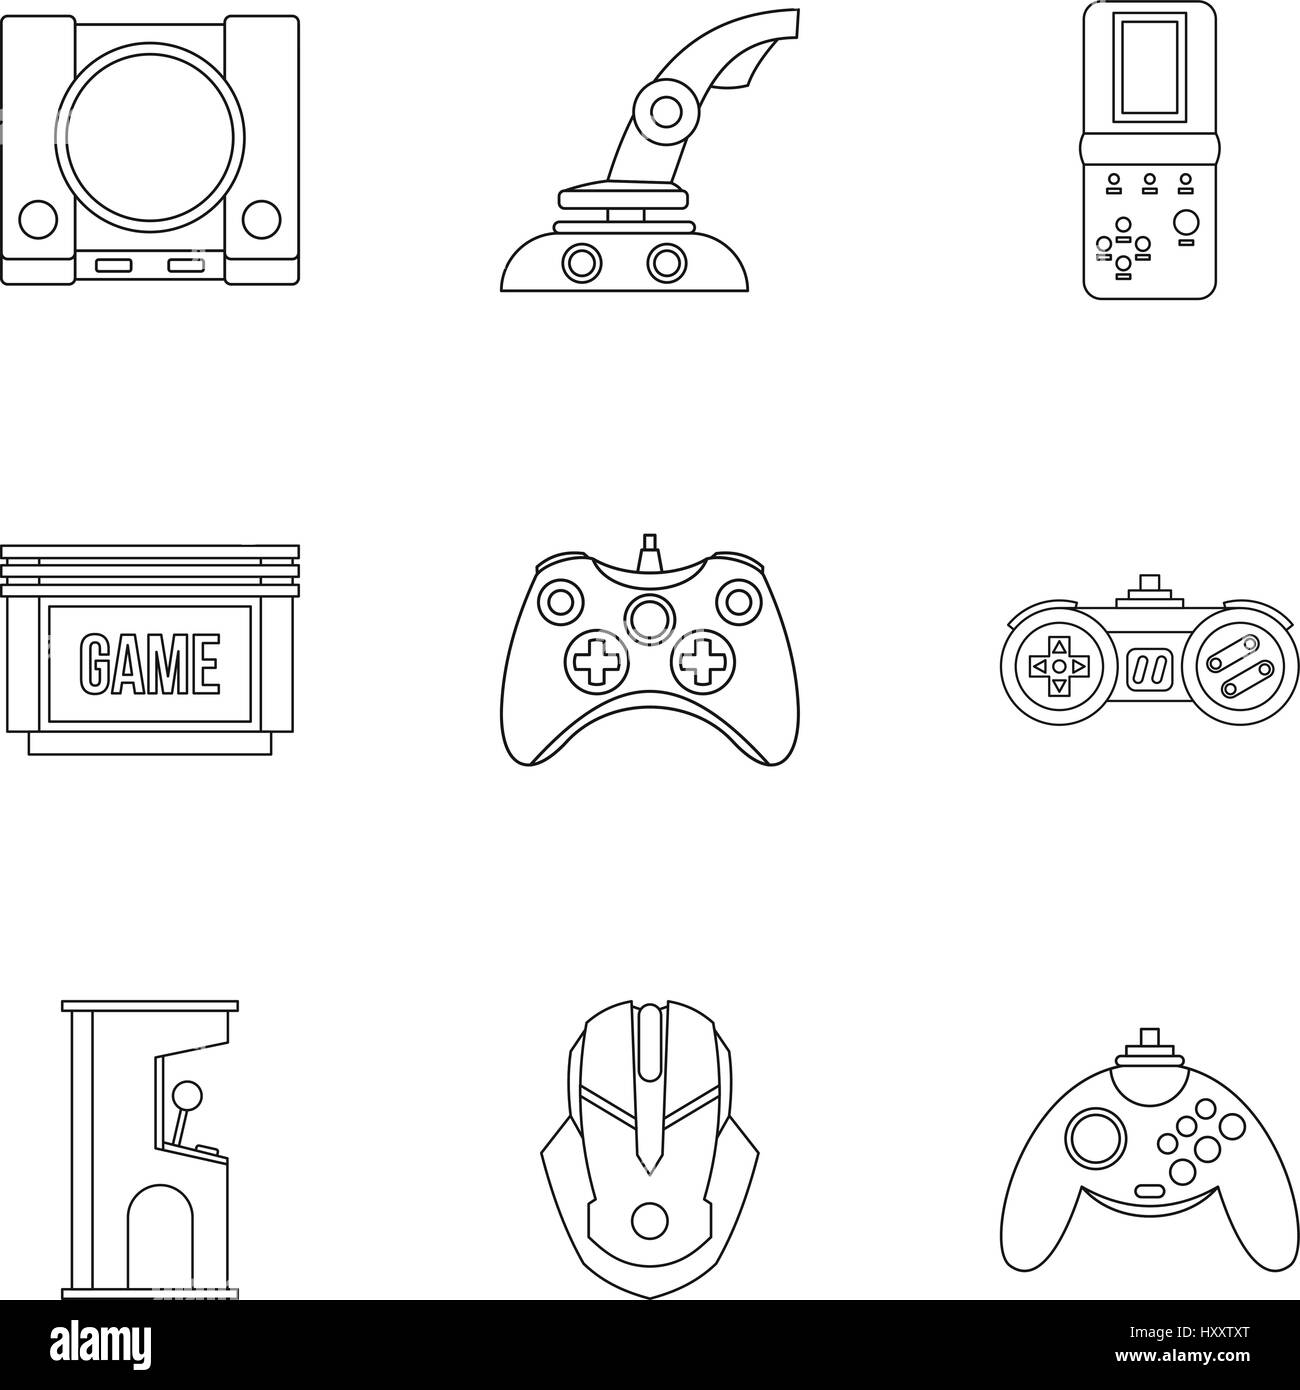 Computer games icons set, outline style - Stock Image